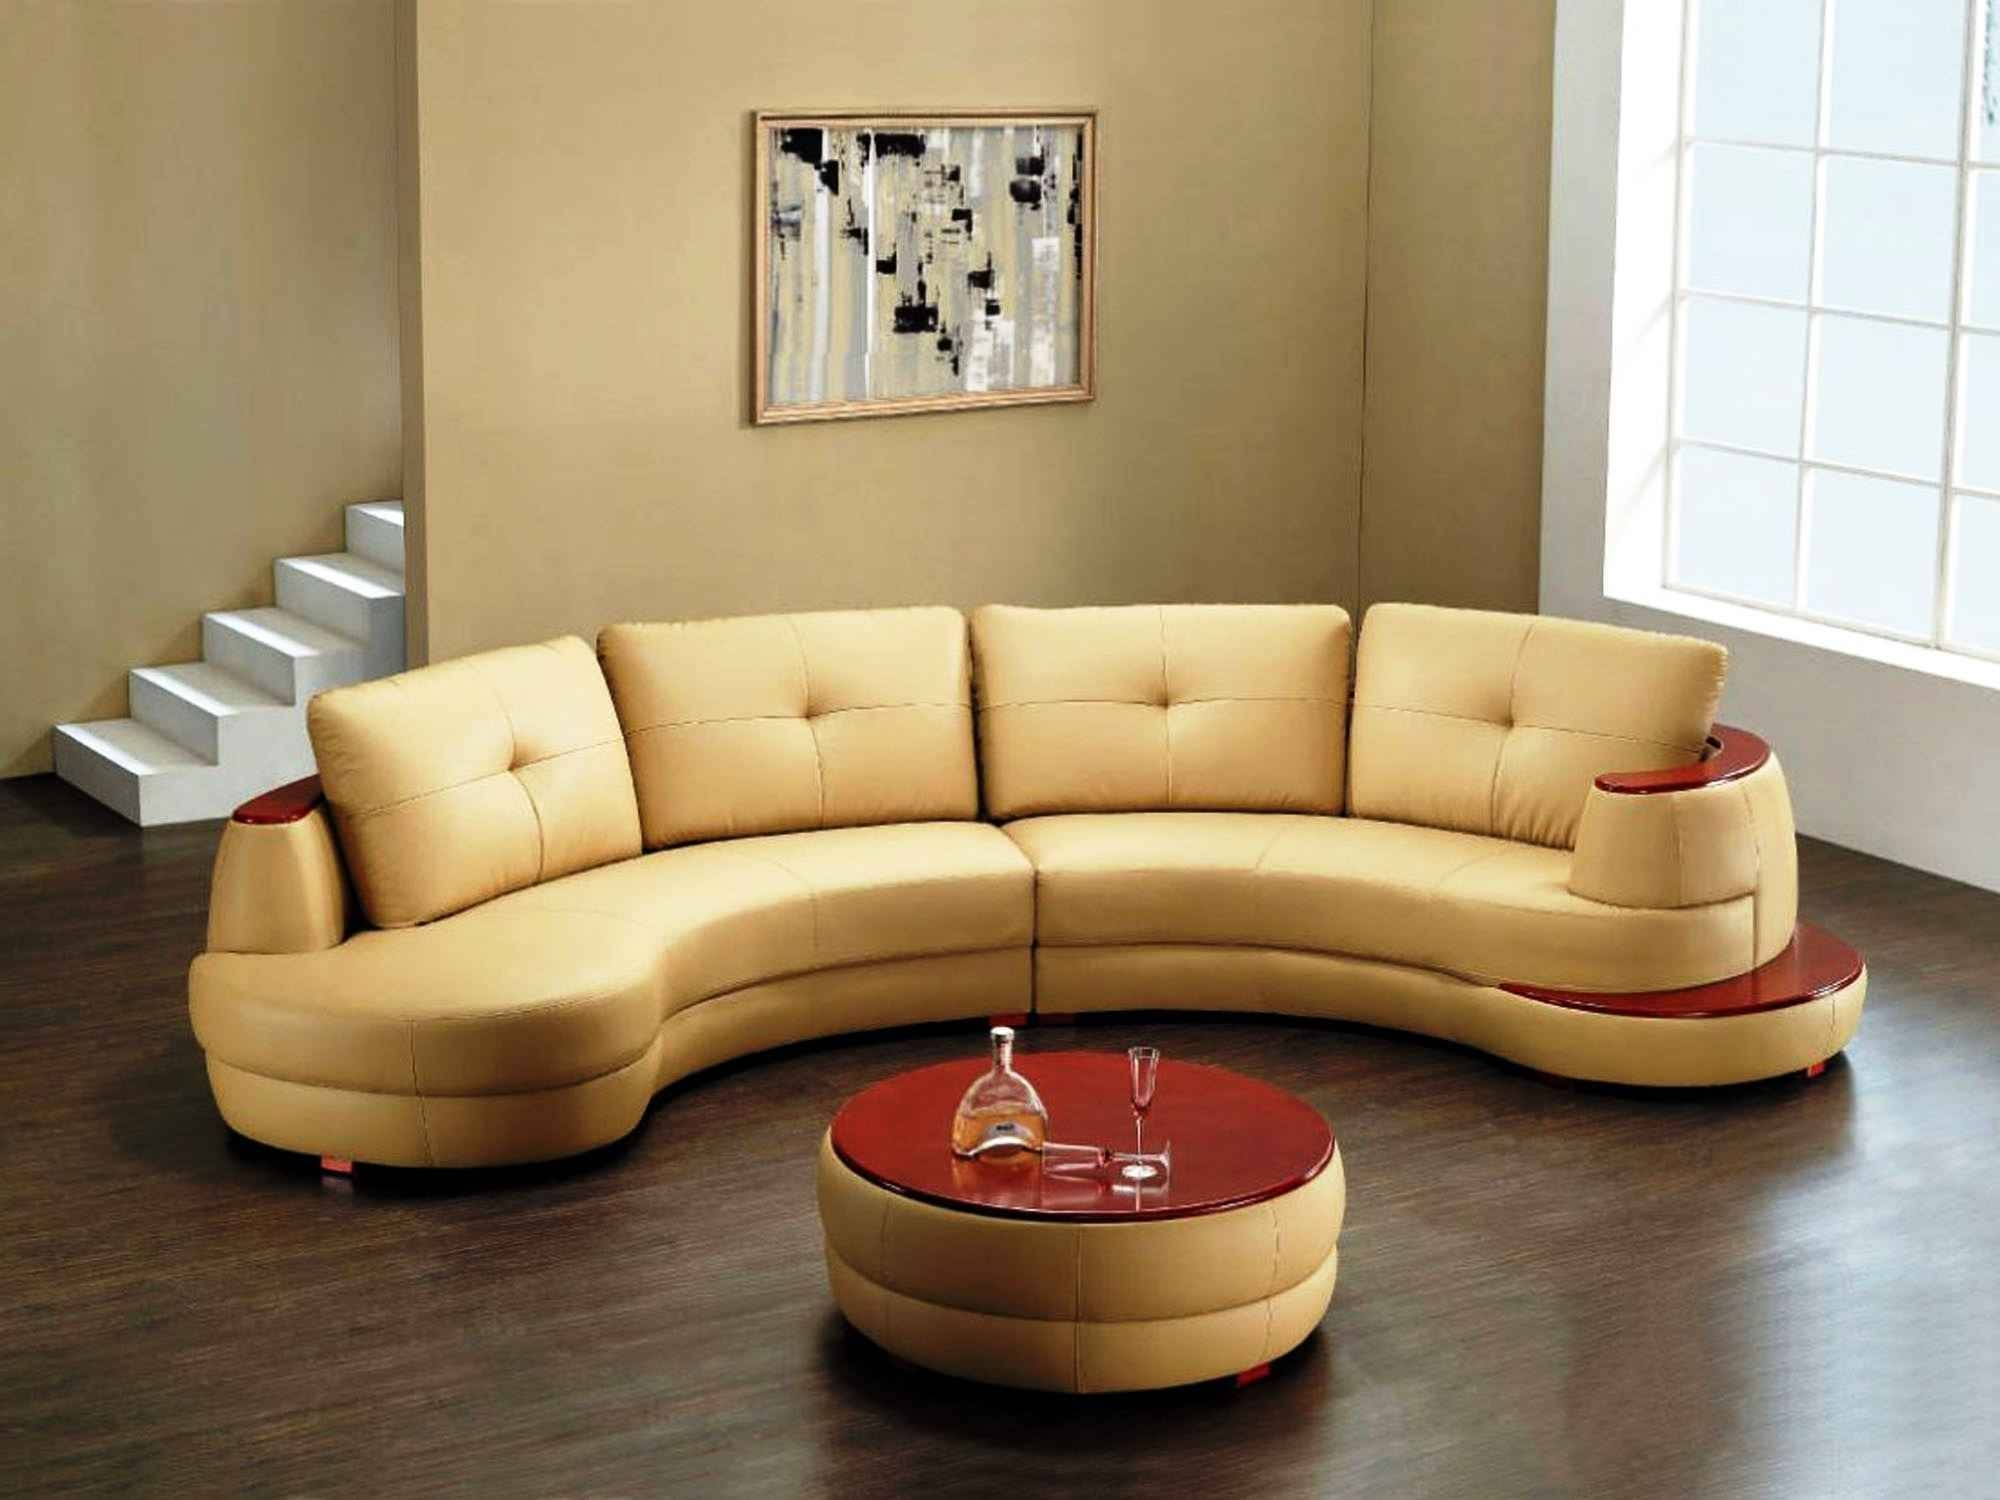 Circular Sofa Chair | Sofas Decoration pertaining to Round Sofa Chairs (Image 3 of 15)